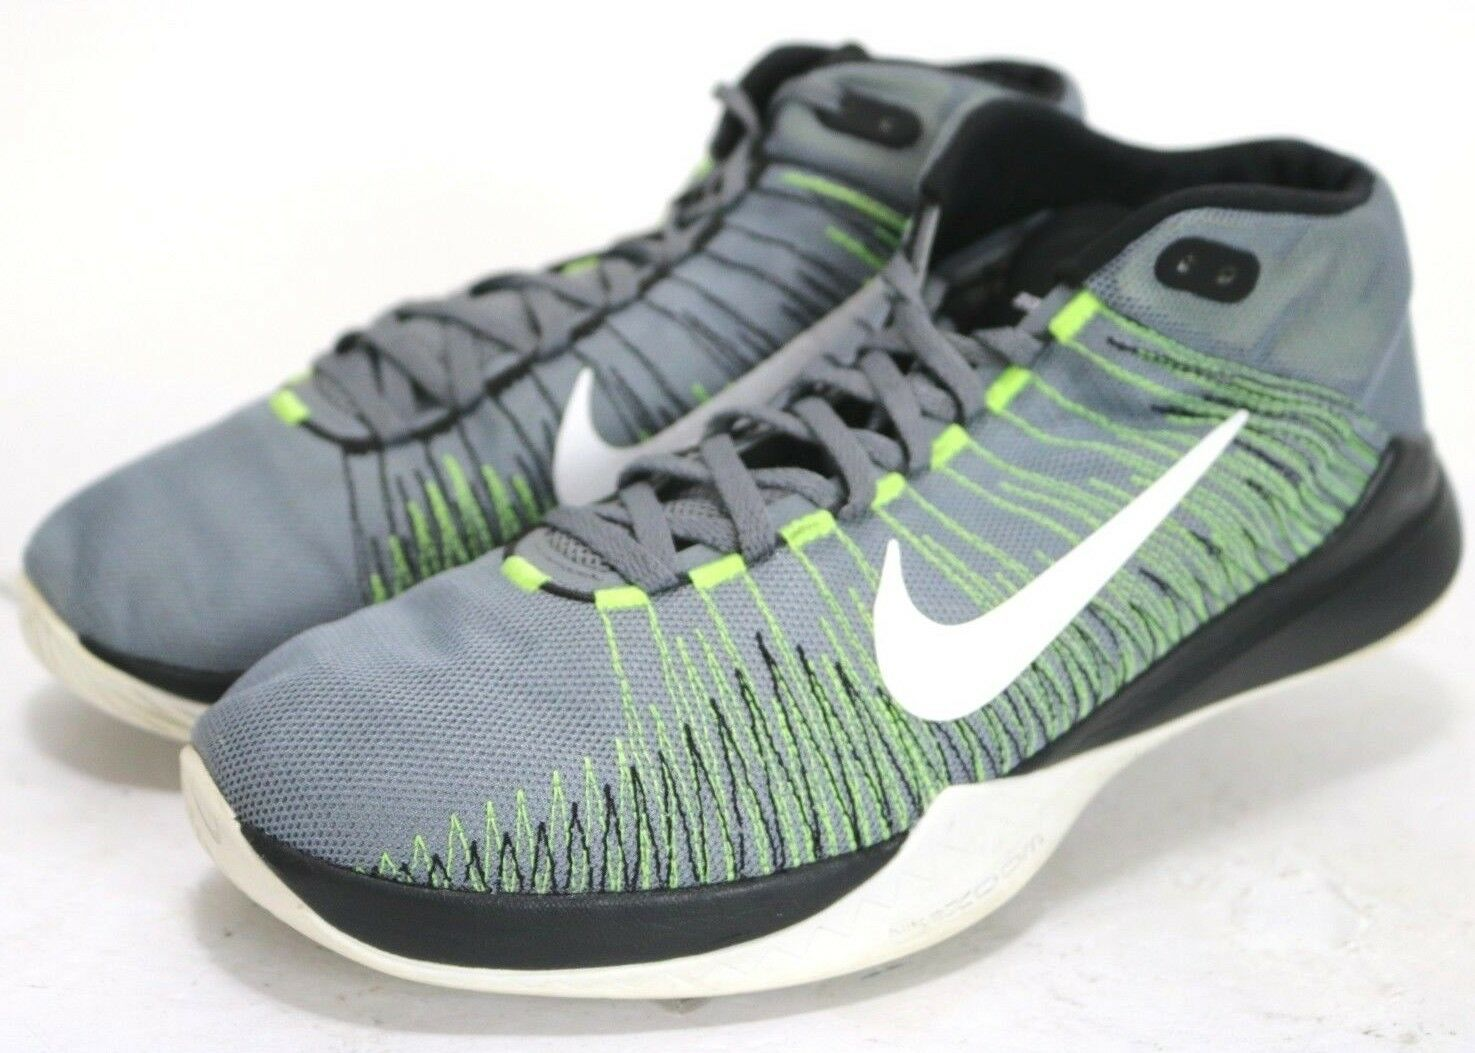 Nike Zoom Ascention  95 Men's Basketball shoes Size 13 Grey Green